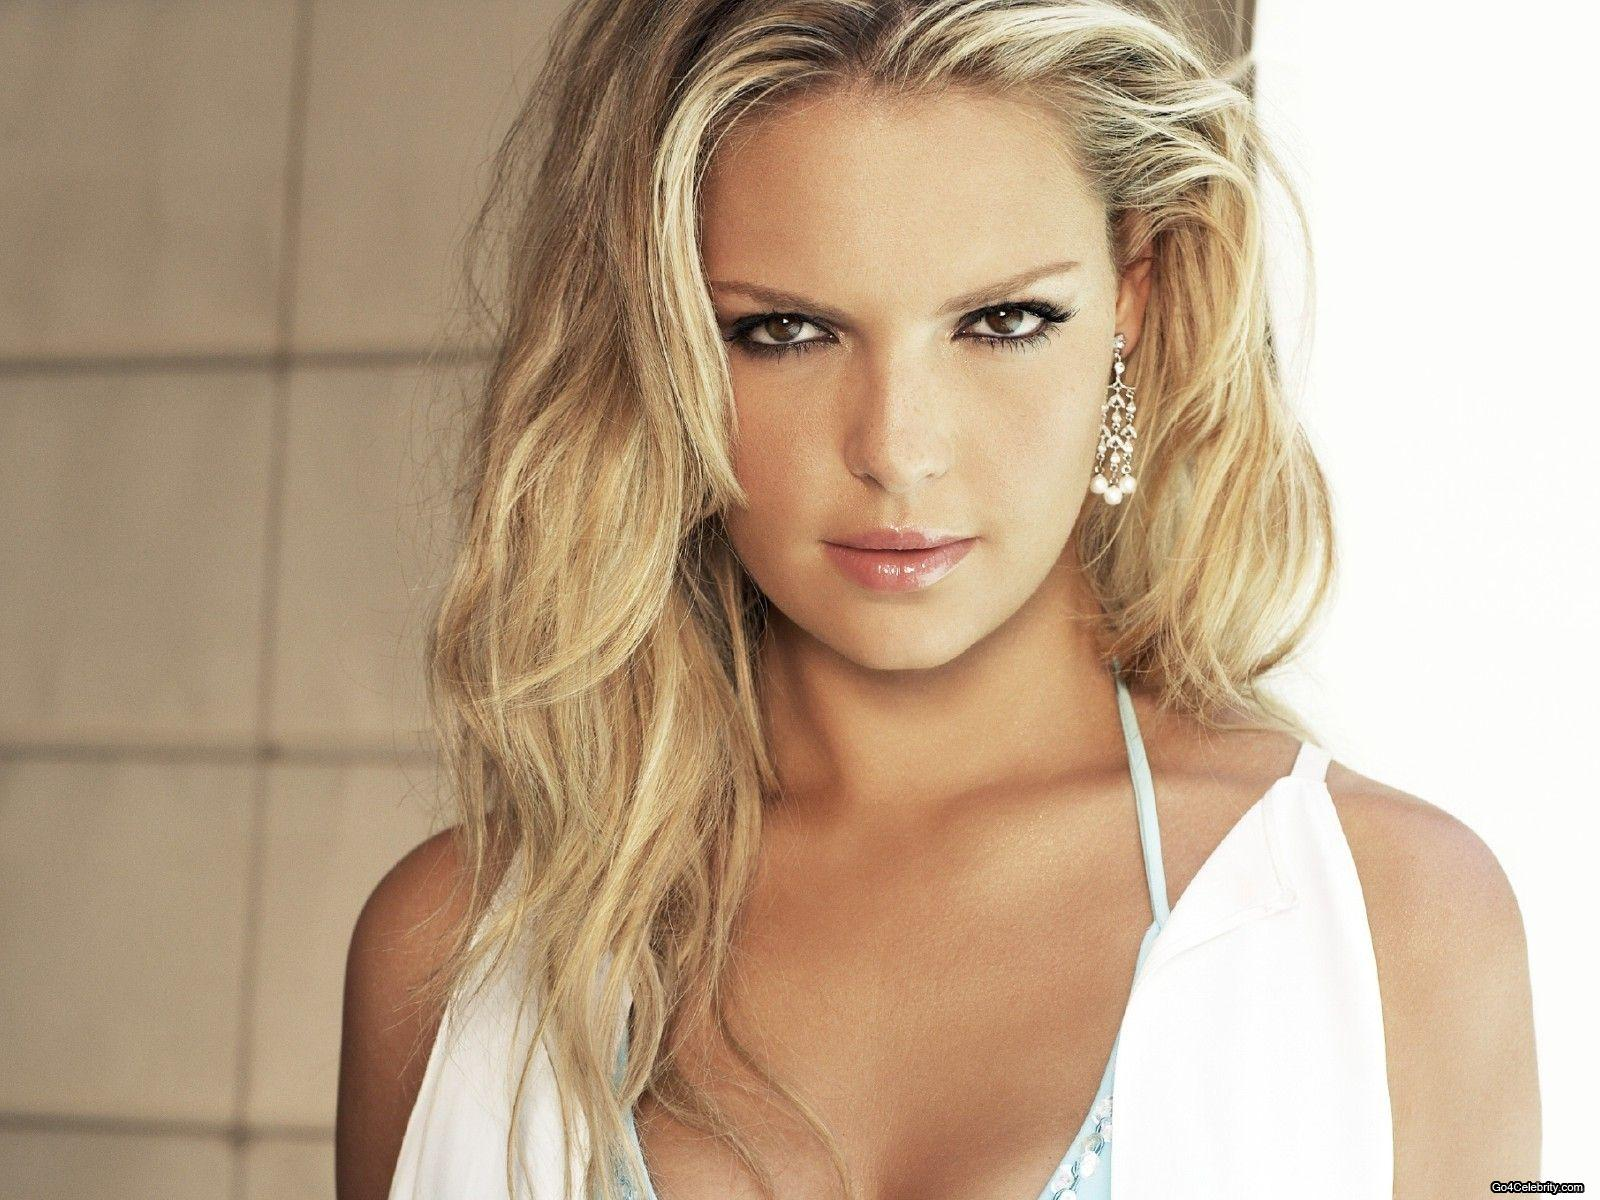 http://4.bp.blogspot.com/-KCUdJYsuOJ0/UCBAq8_ps7I/AAAAAAAAMHA/rb0Wamoe5do/s1600/Katherine+Heigl+Wallpaper+-+Www.10Pixeles+%2815%29.jpg